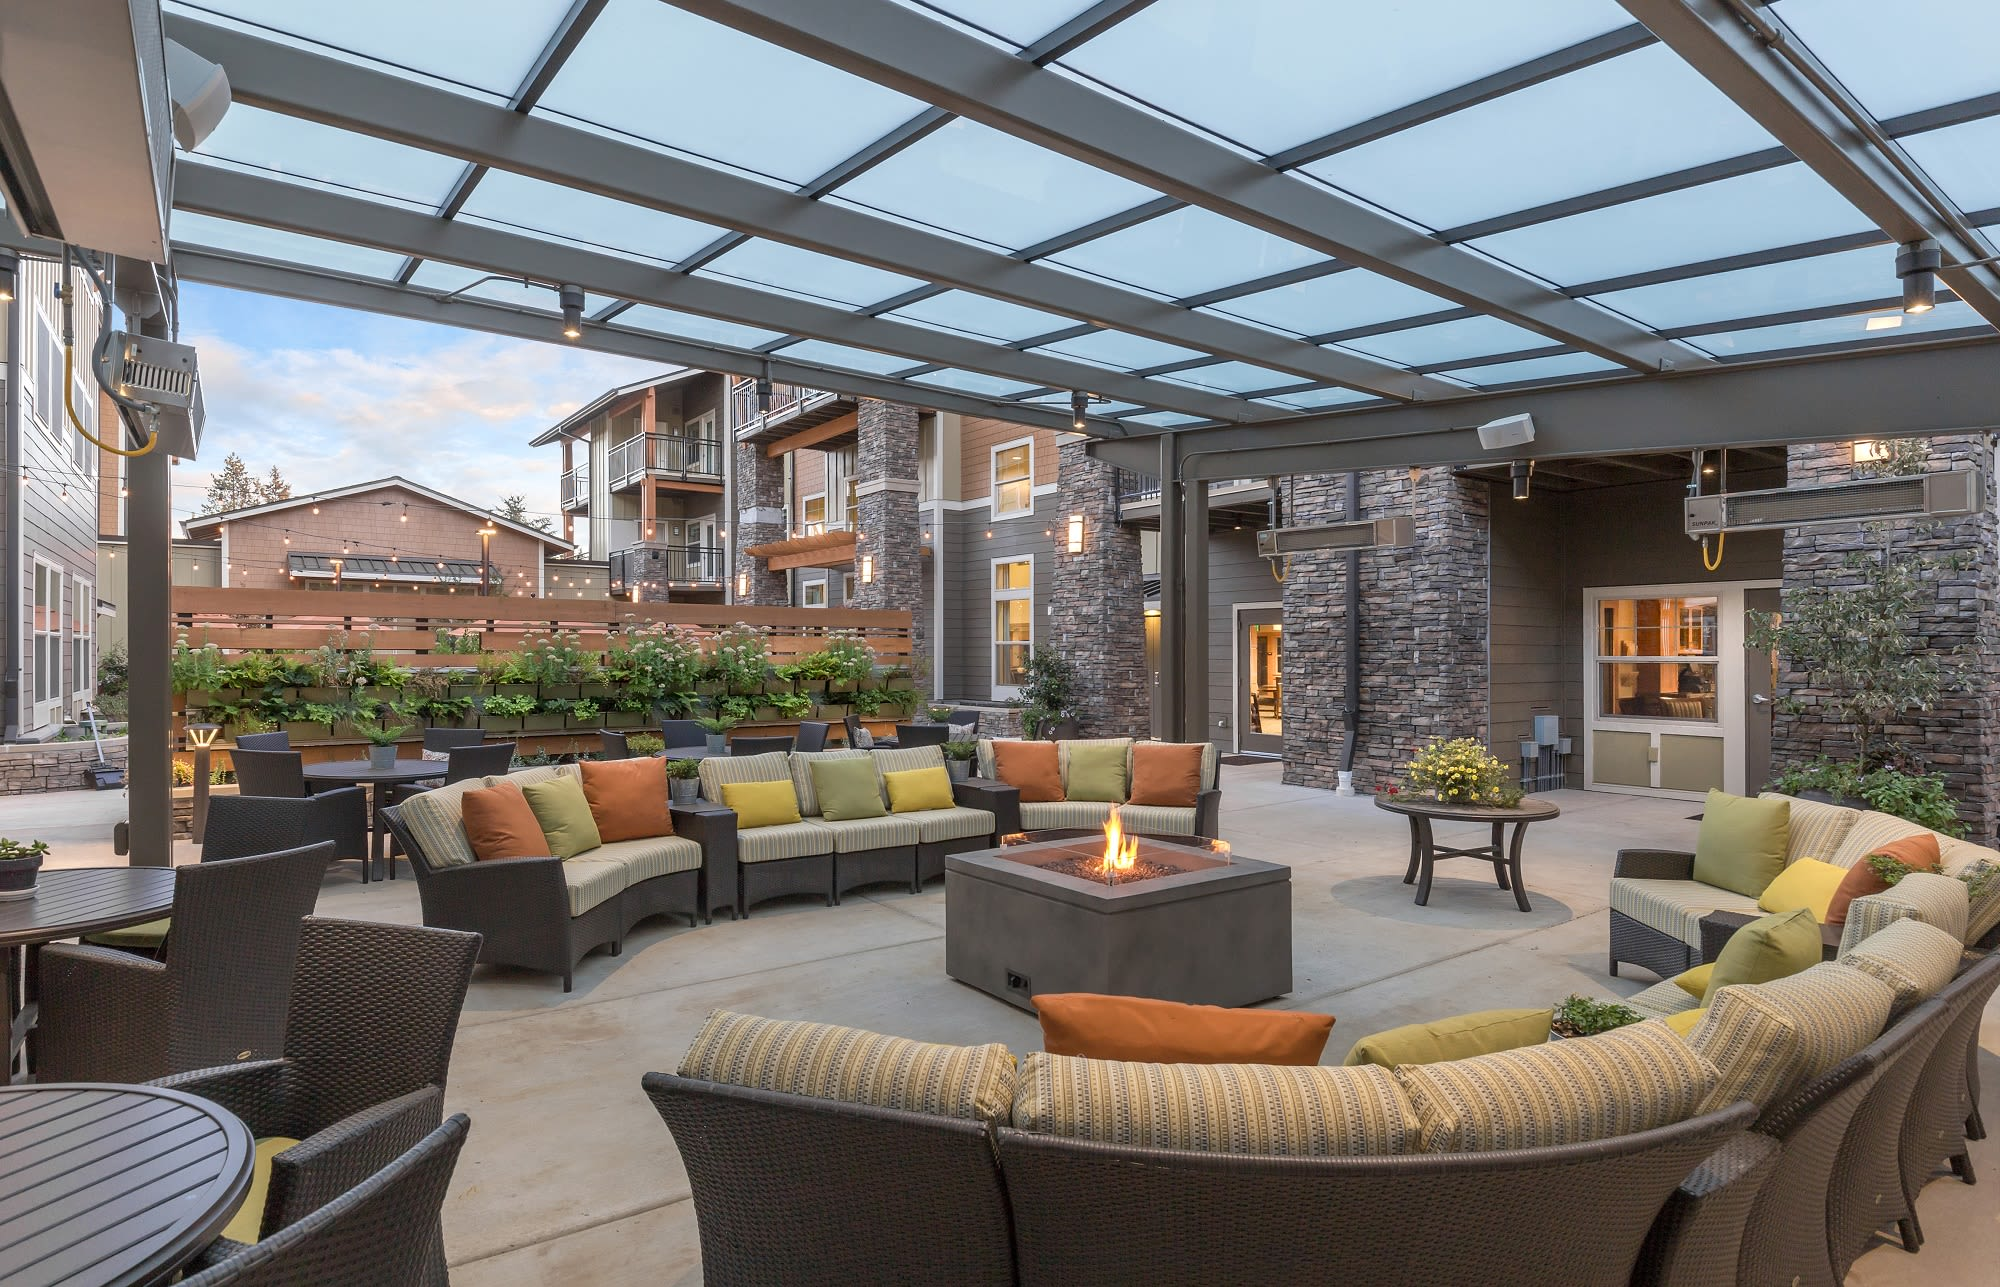 Enjoy the outdoors at The Springs at Greer Gardens